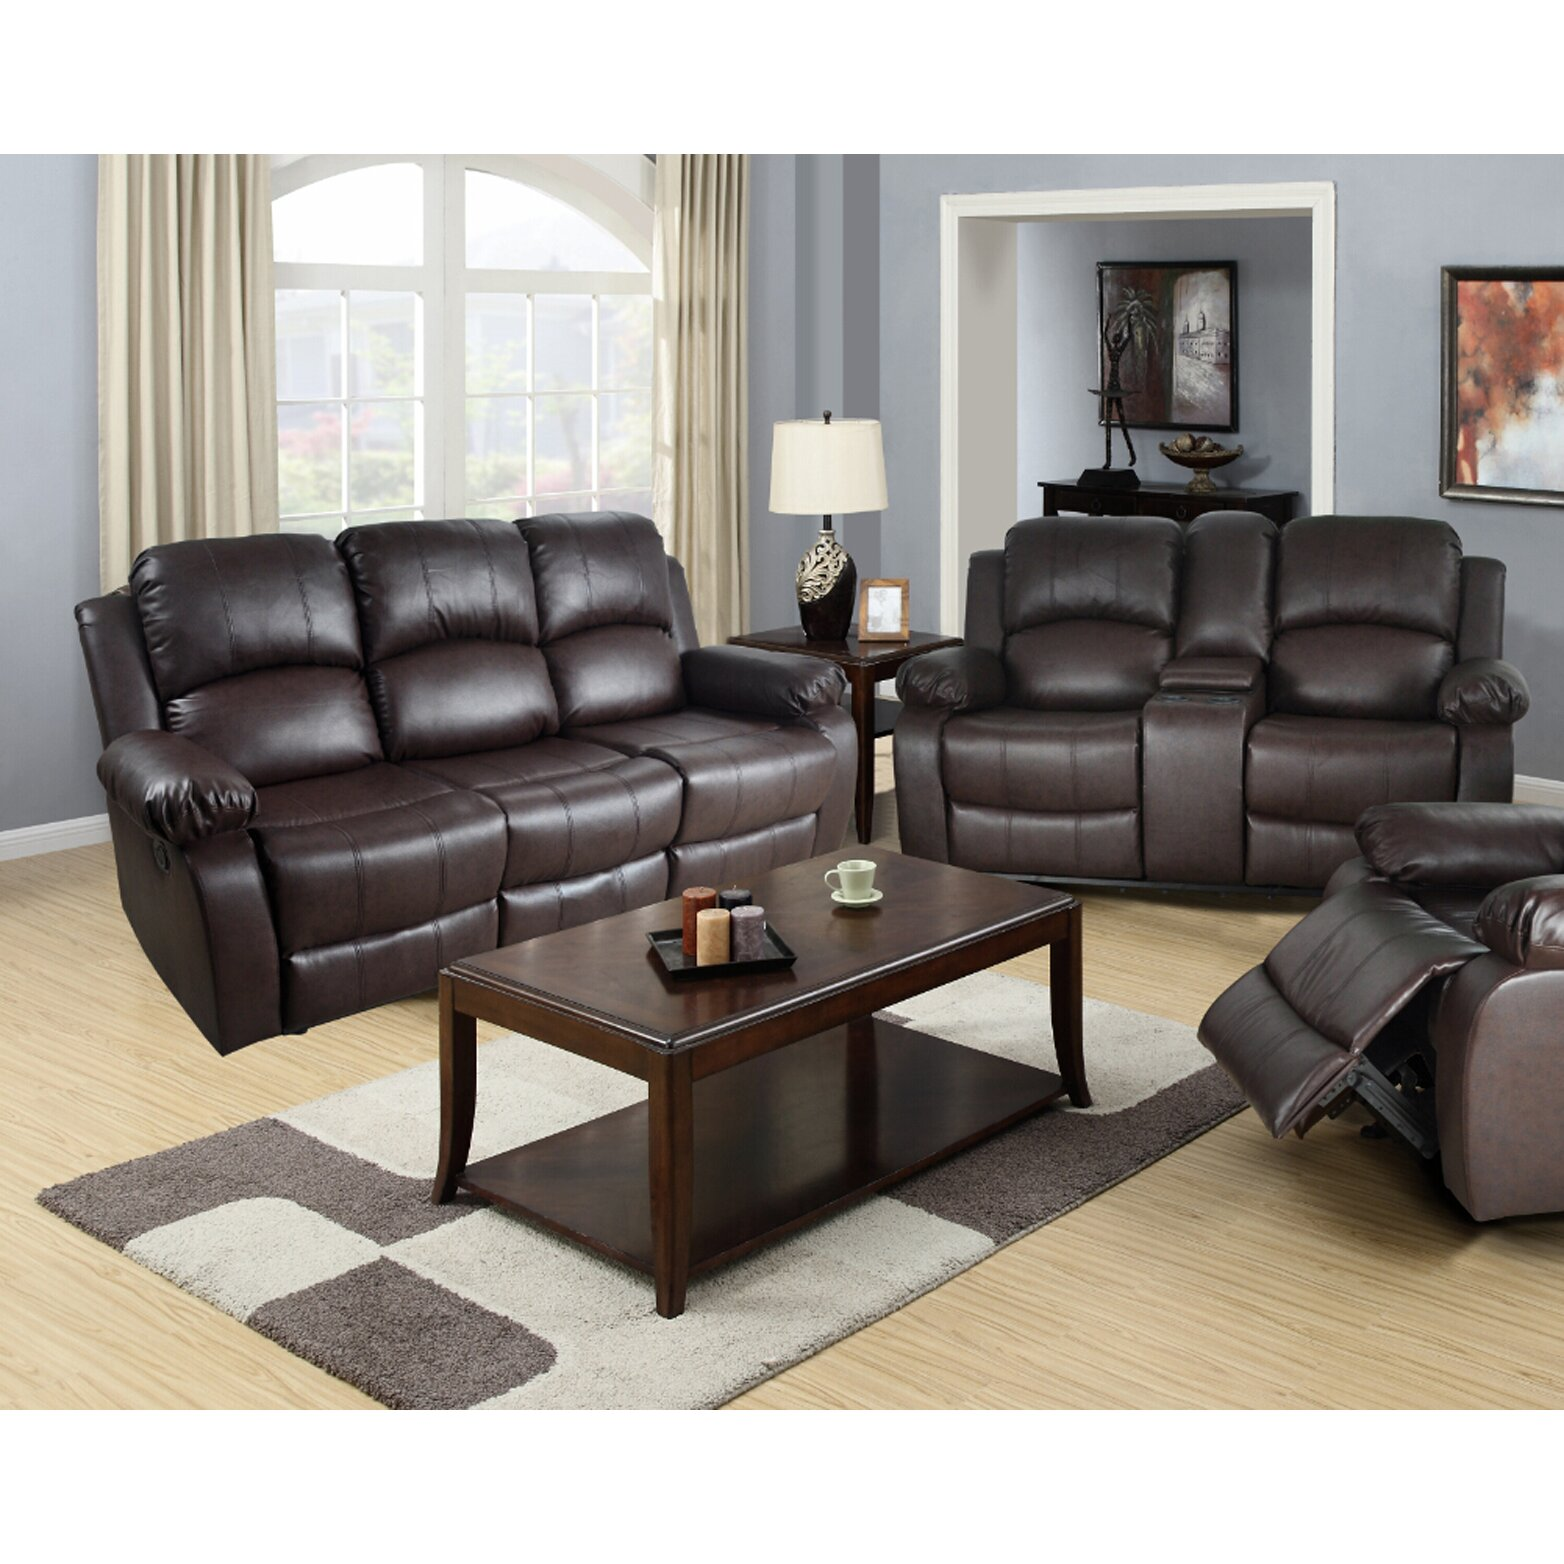 Red Leather Living Room Sets Red Barrel Studio Mayday 2 Piece Leather Reclining Living Room Set